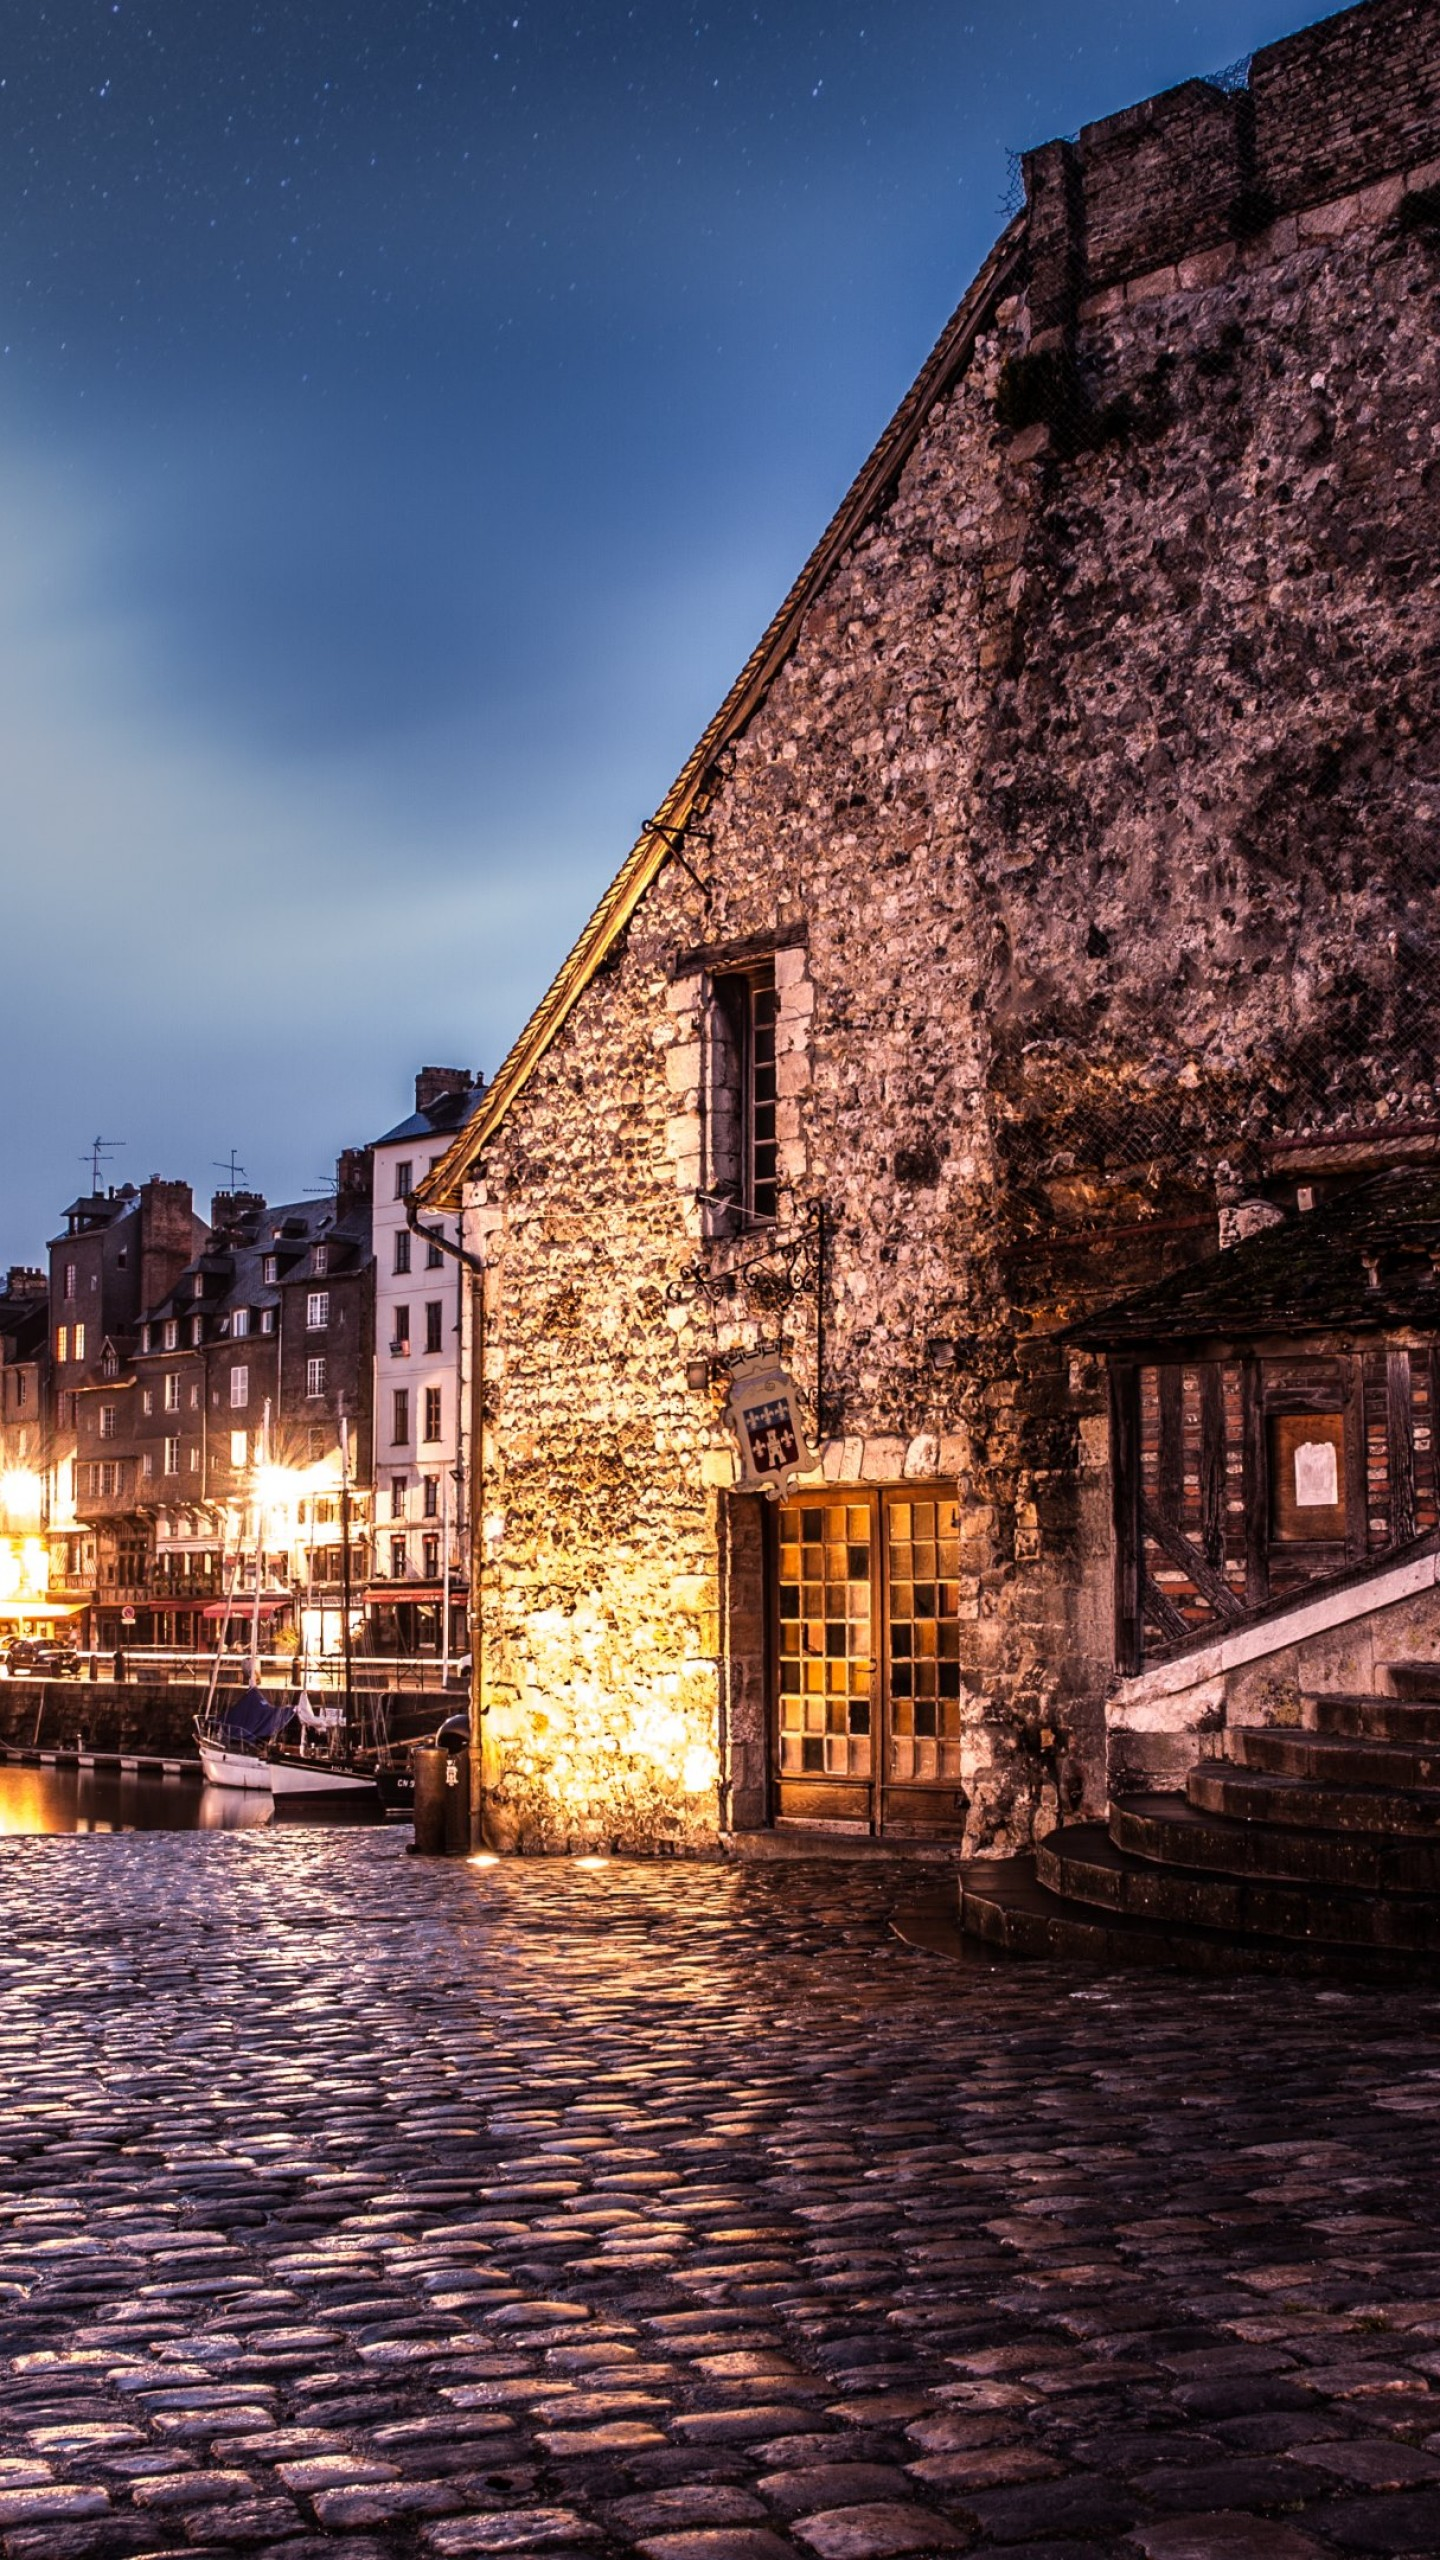 Wallpaper honfleur france travel tourism booking - Hd 4k resolution wallpaper ...